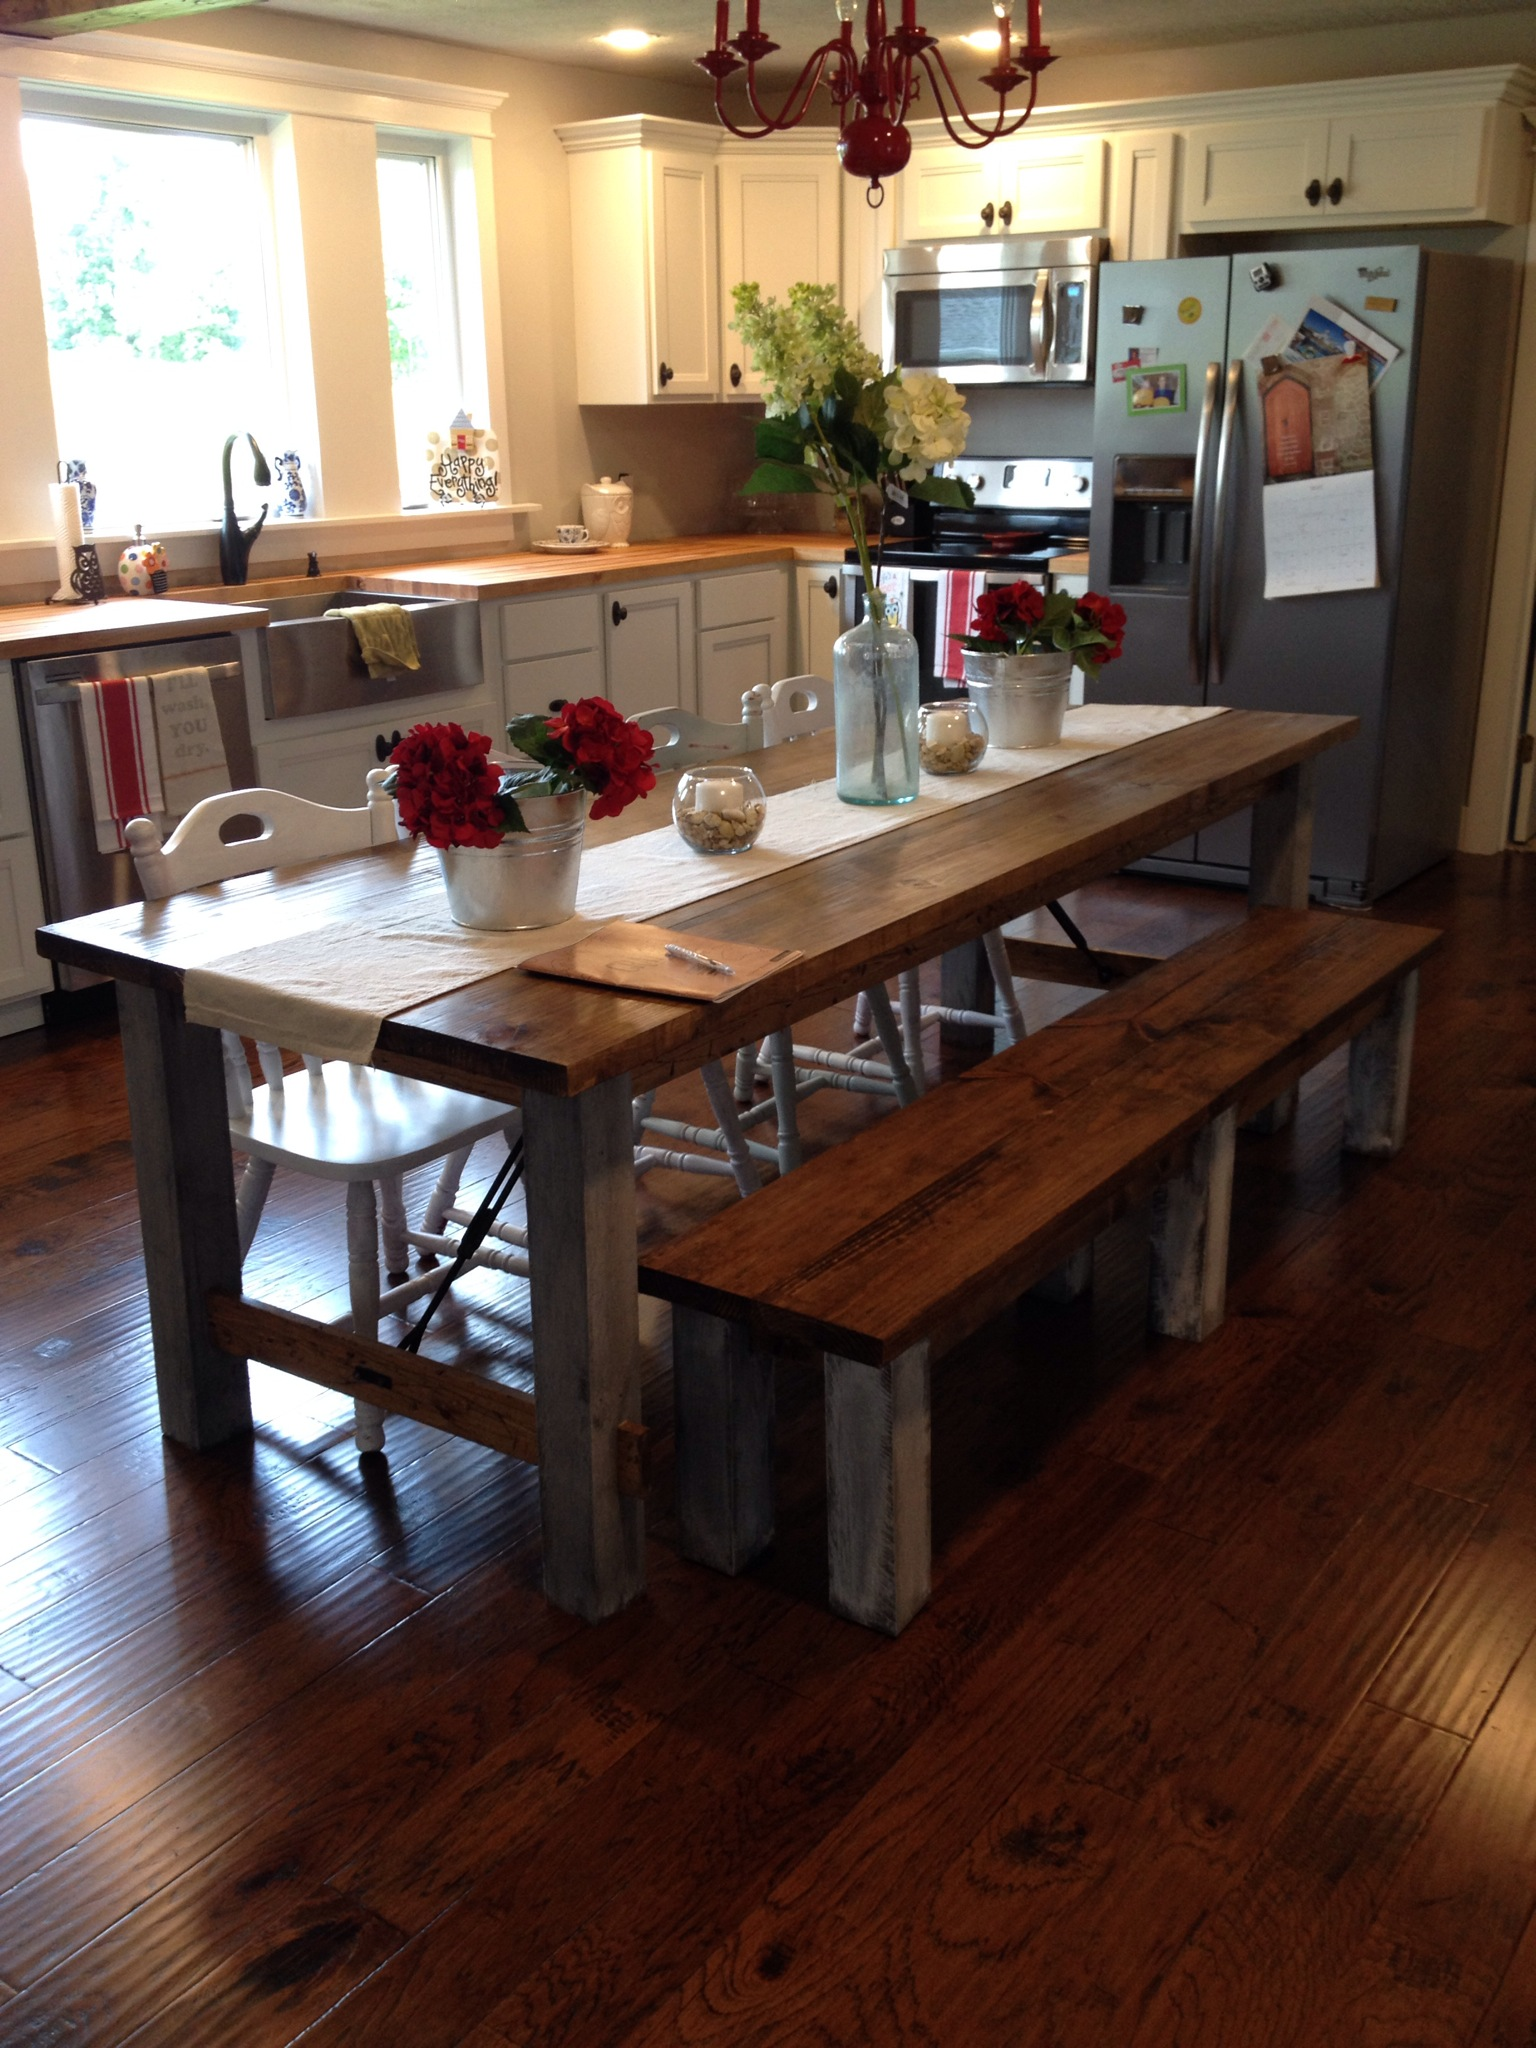 farm house kitchen table best quality cabinets shara at chasing a dream shares her farmhouse